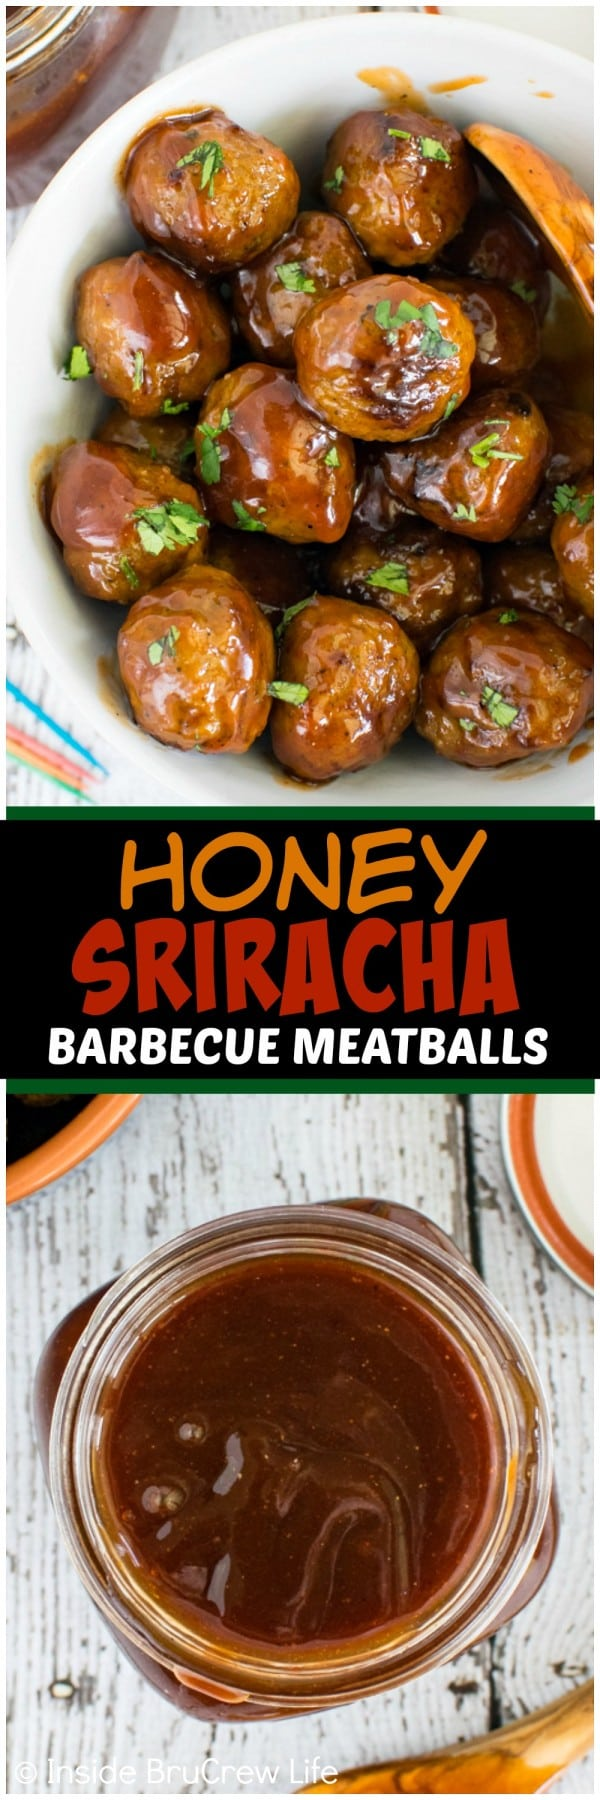 Two pictures of Honey Sriracha Barbecue Meatballs collaged together with a black text box